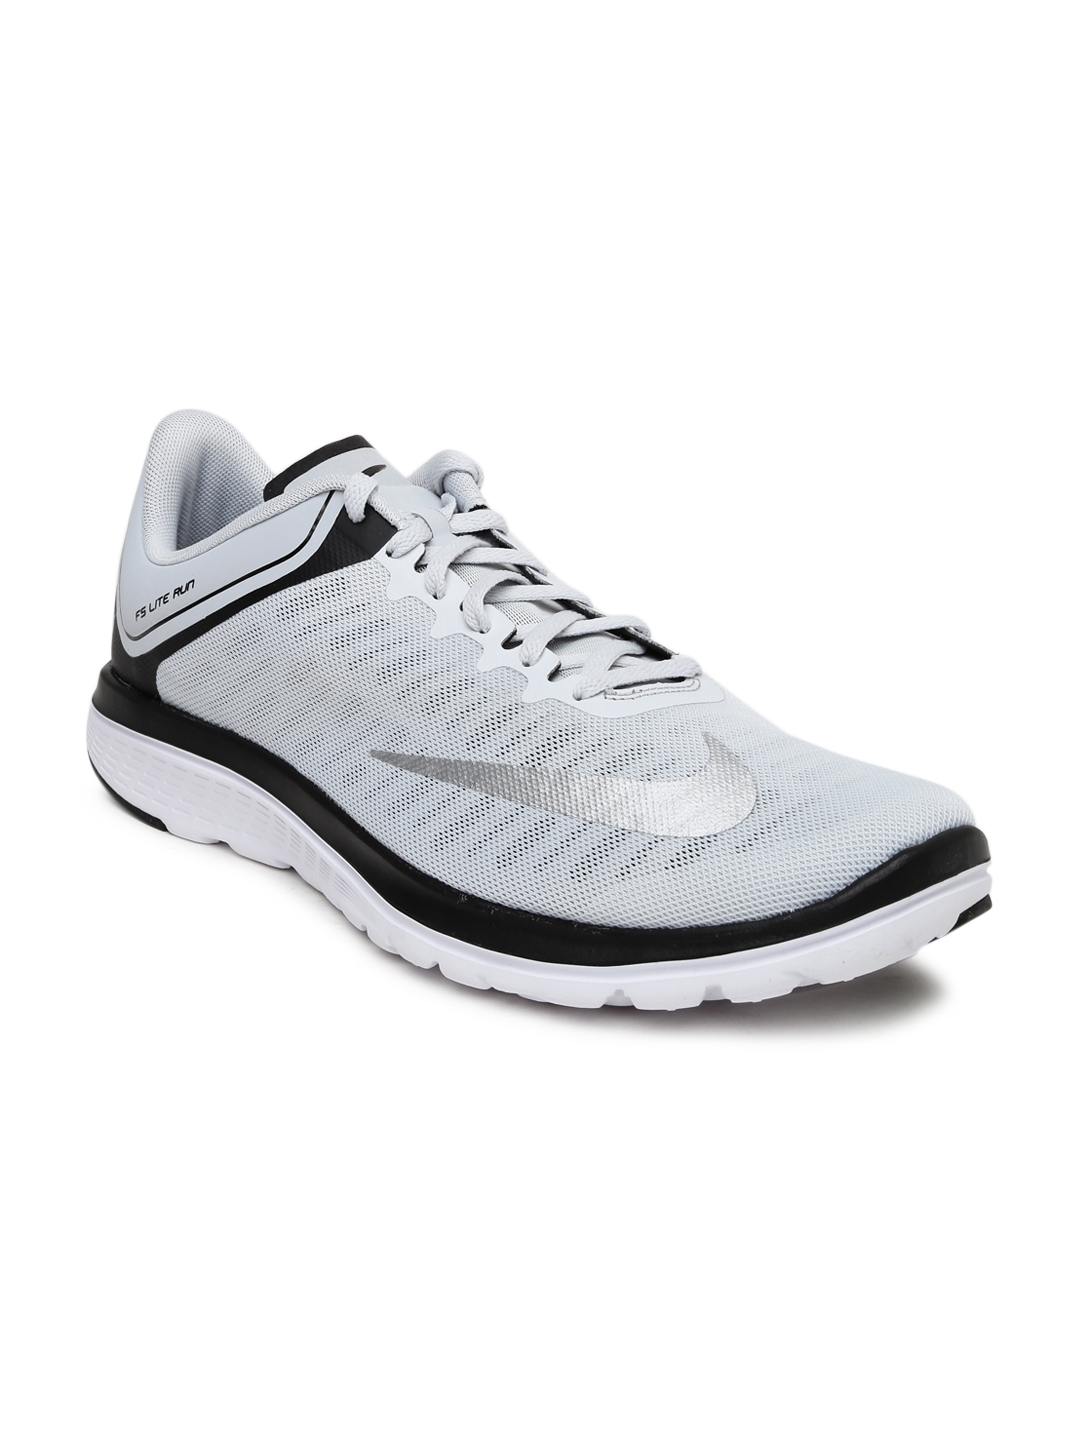 huge discount 117f7 b8c73 Buy Nike Men Grey FS LITE RUN 4 Running Shoes - Sports Shoes for Men ...